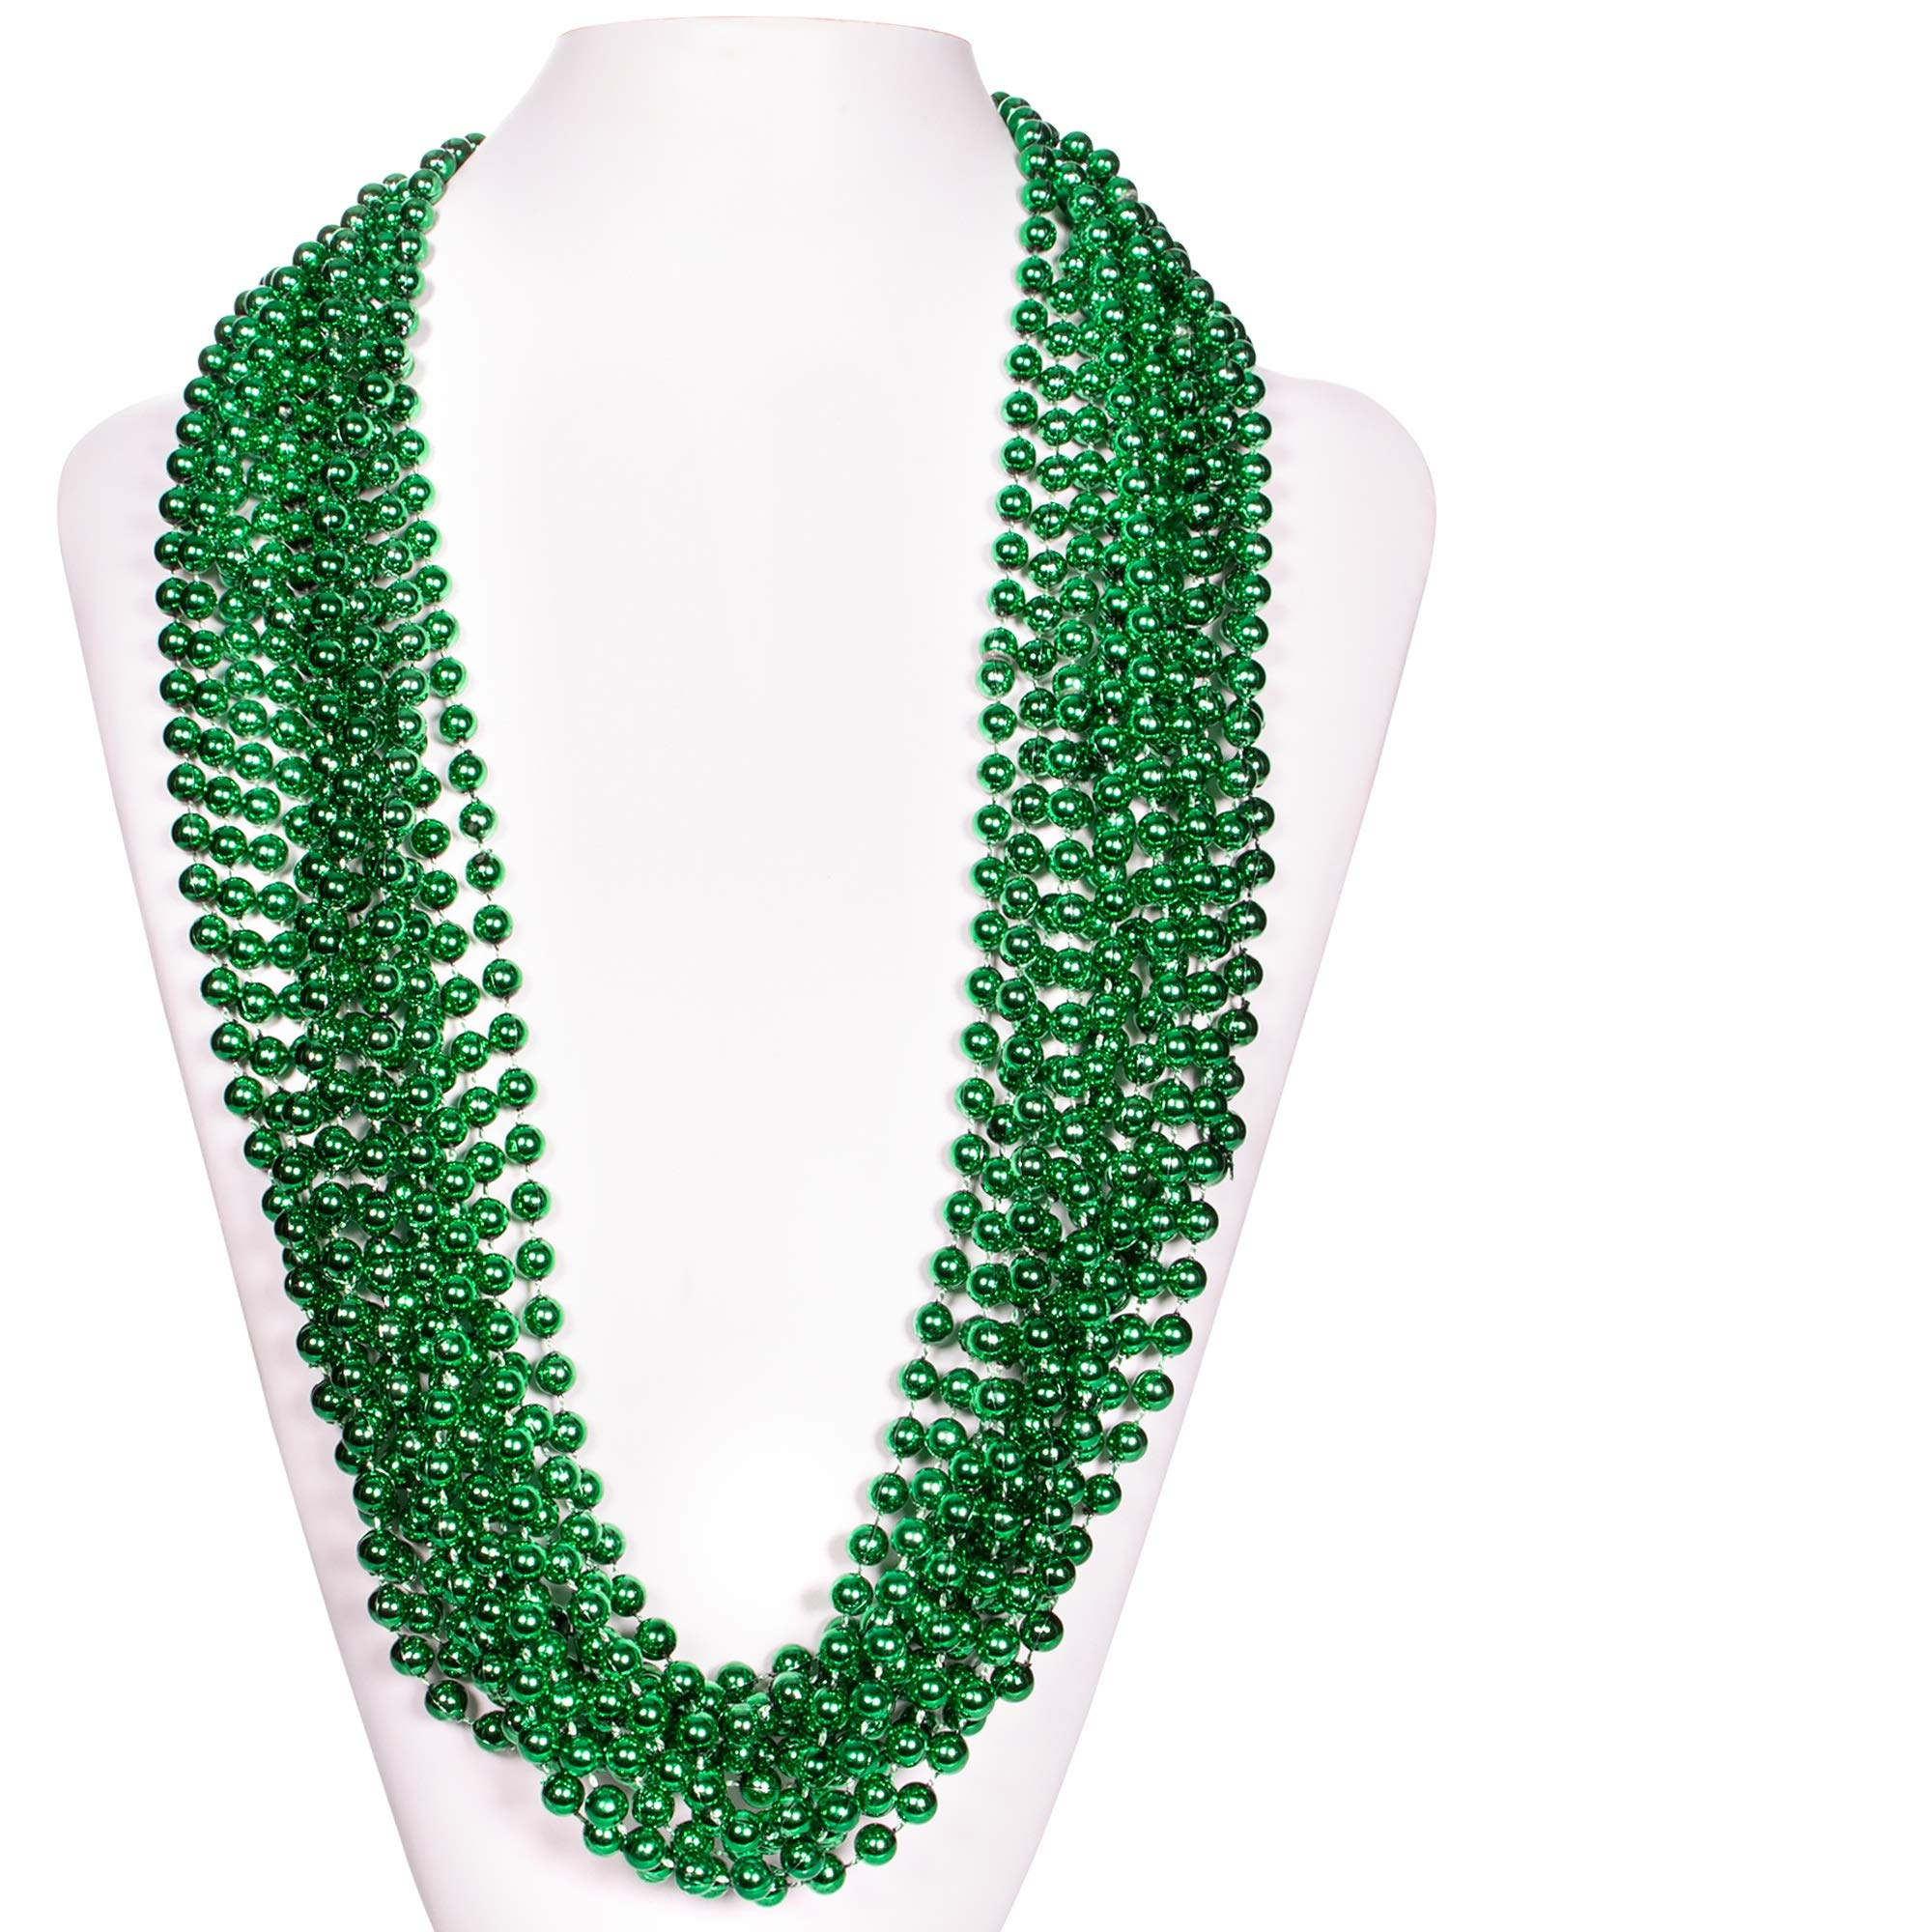 """(72 Pack) 33"""" Inch Round Metallic Mardi Gras St Patricks Party Necklace Beads (Green)"""